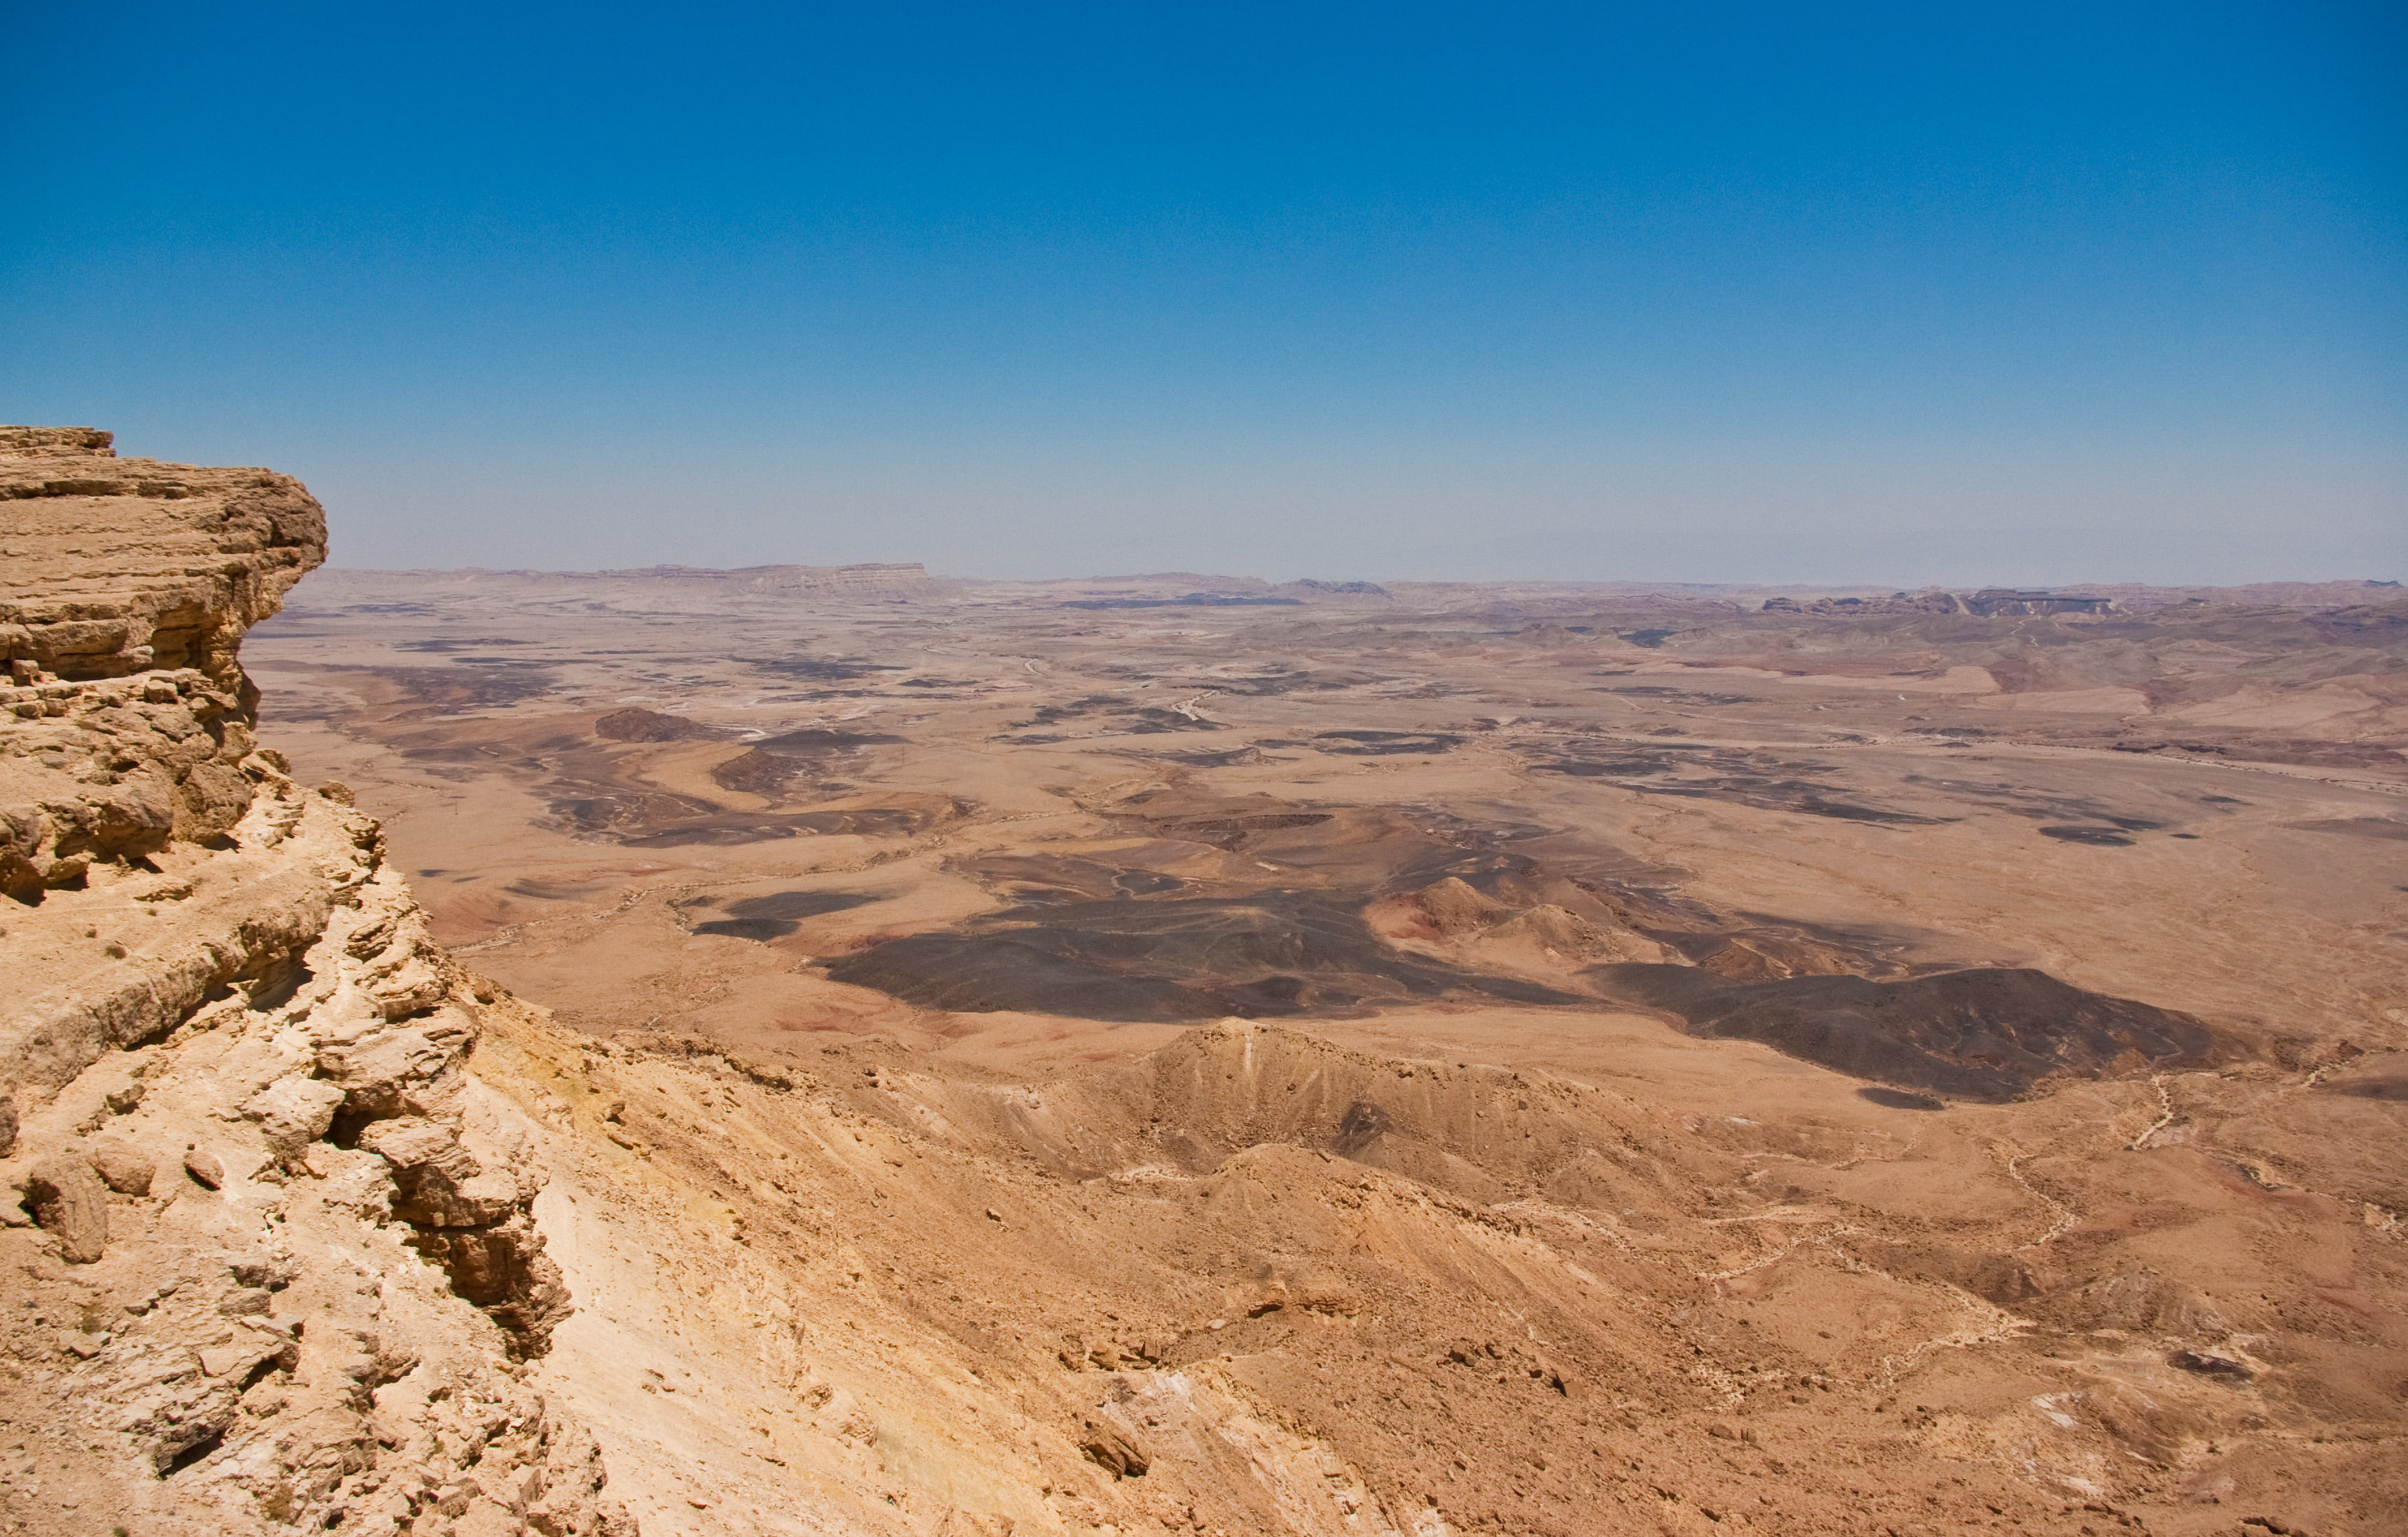 Mitzpe Ramon area was chosen as the region for this simulation center because of its similarities to Mars. Creative Commons